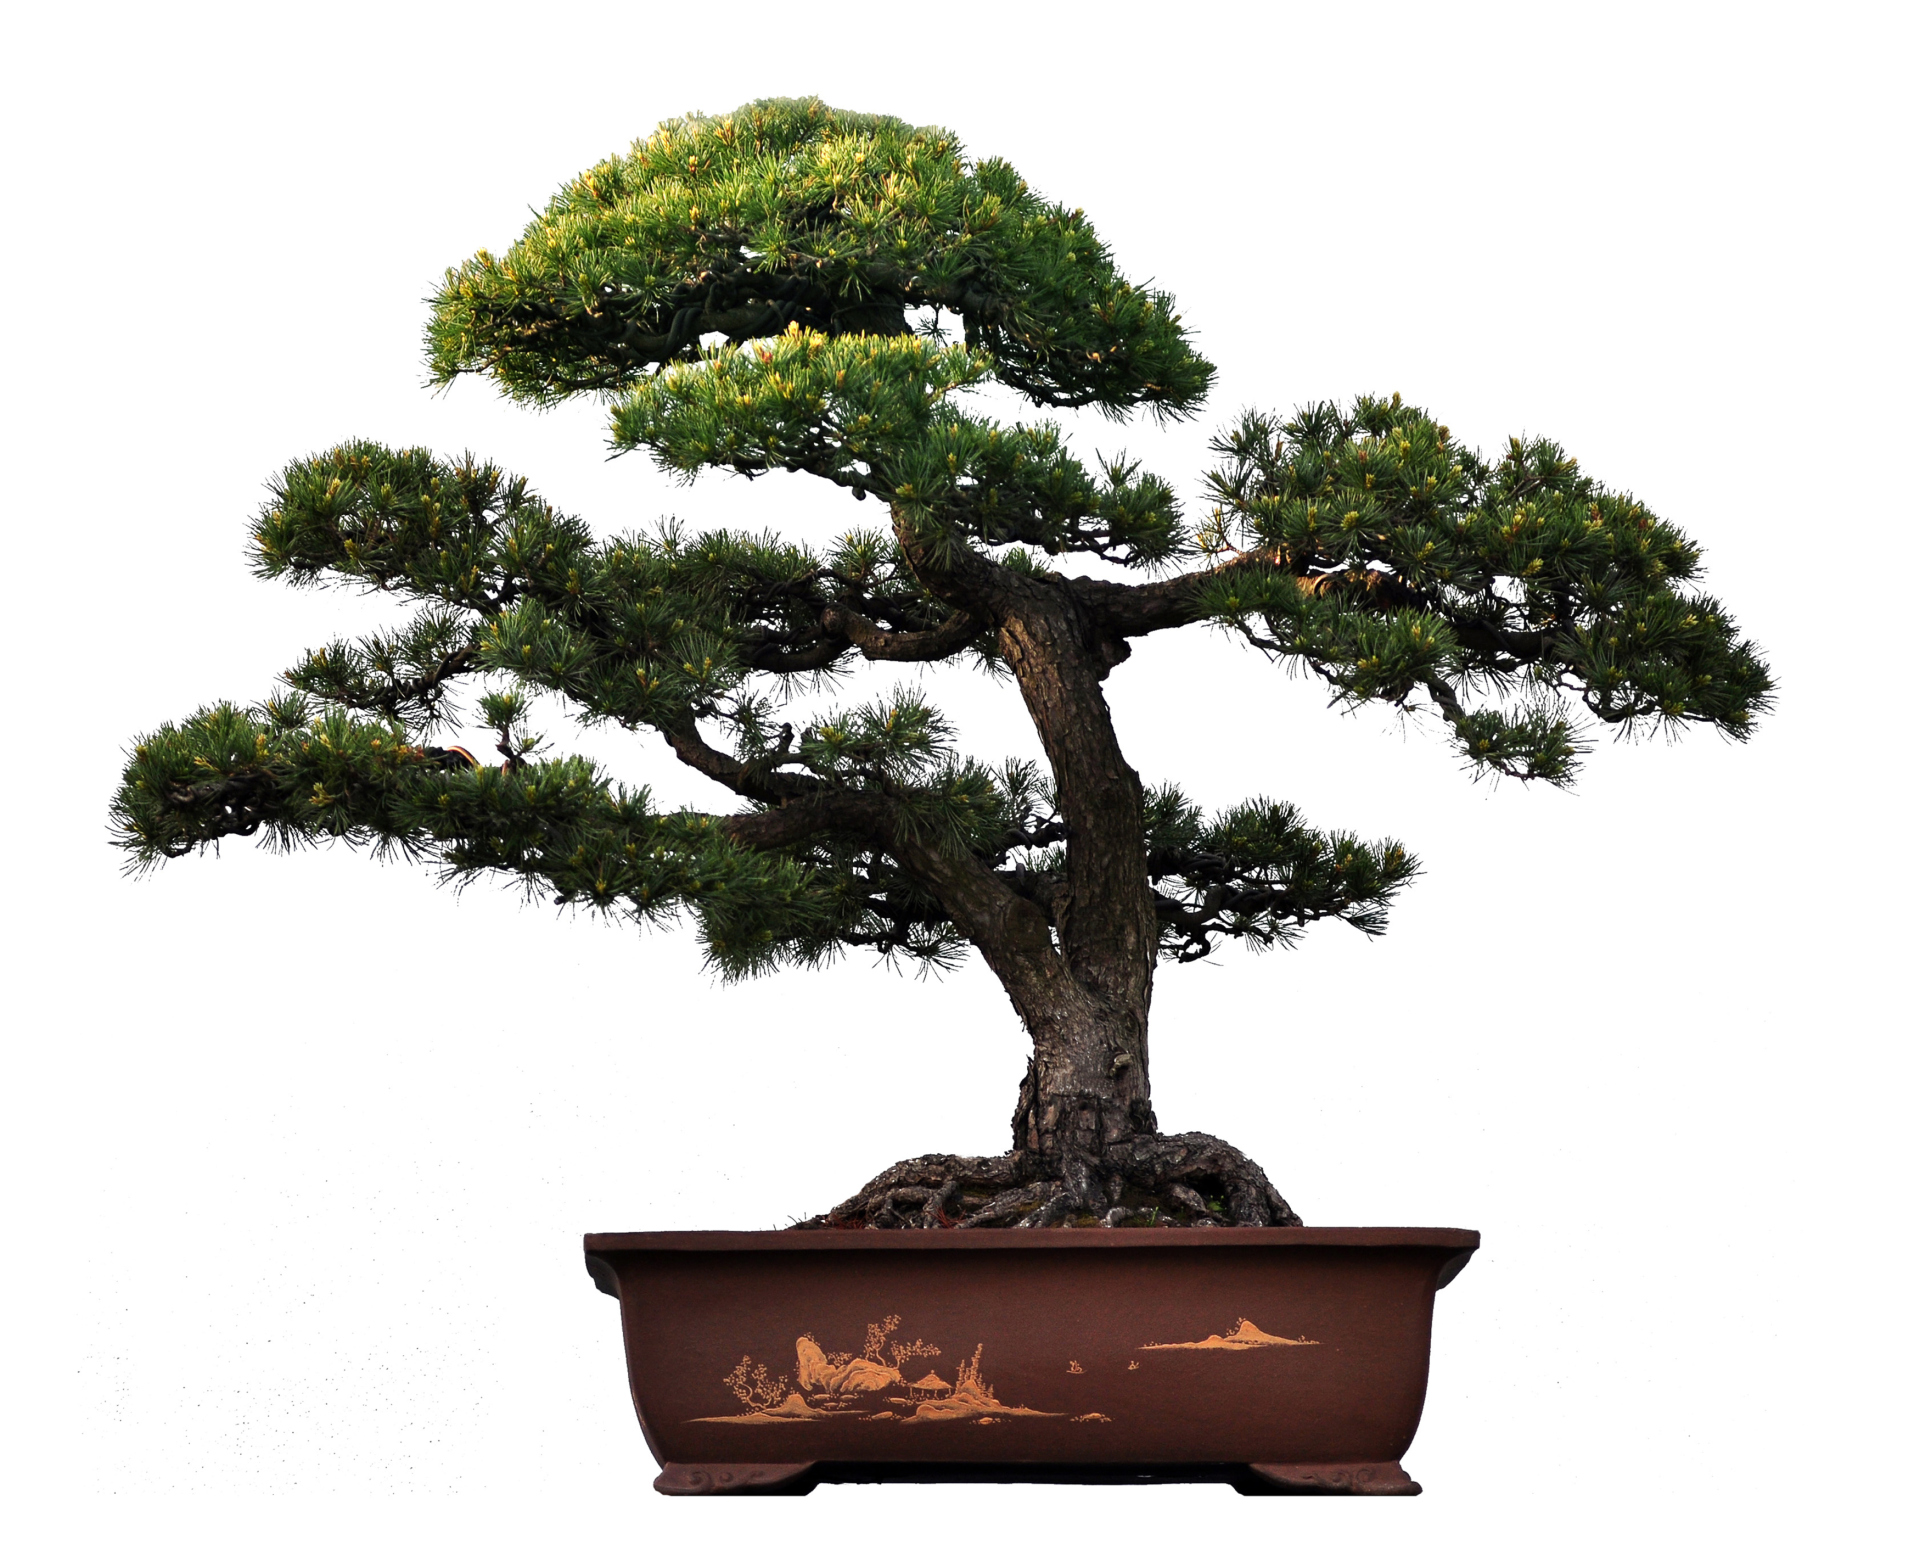 What Is The Meaning Of A Bonsai Tree